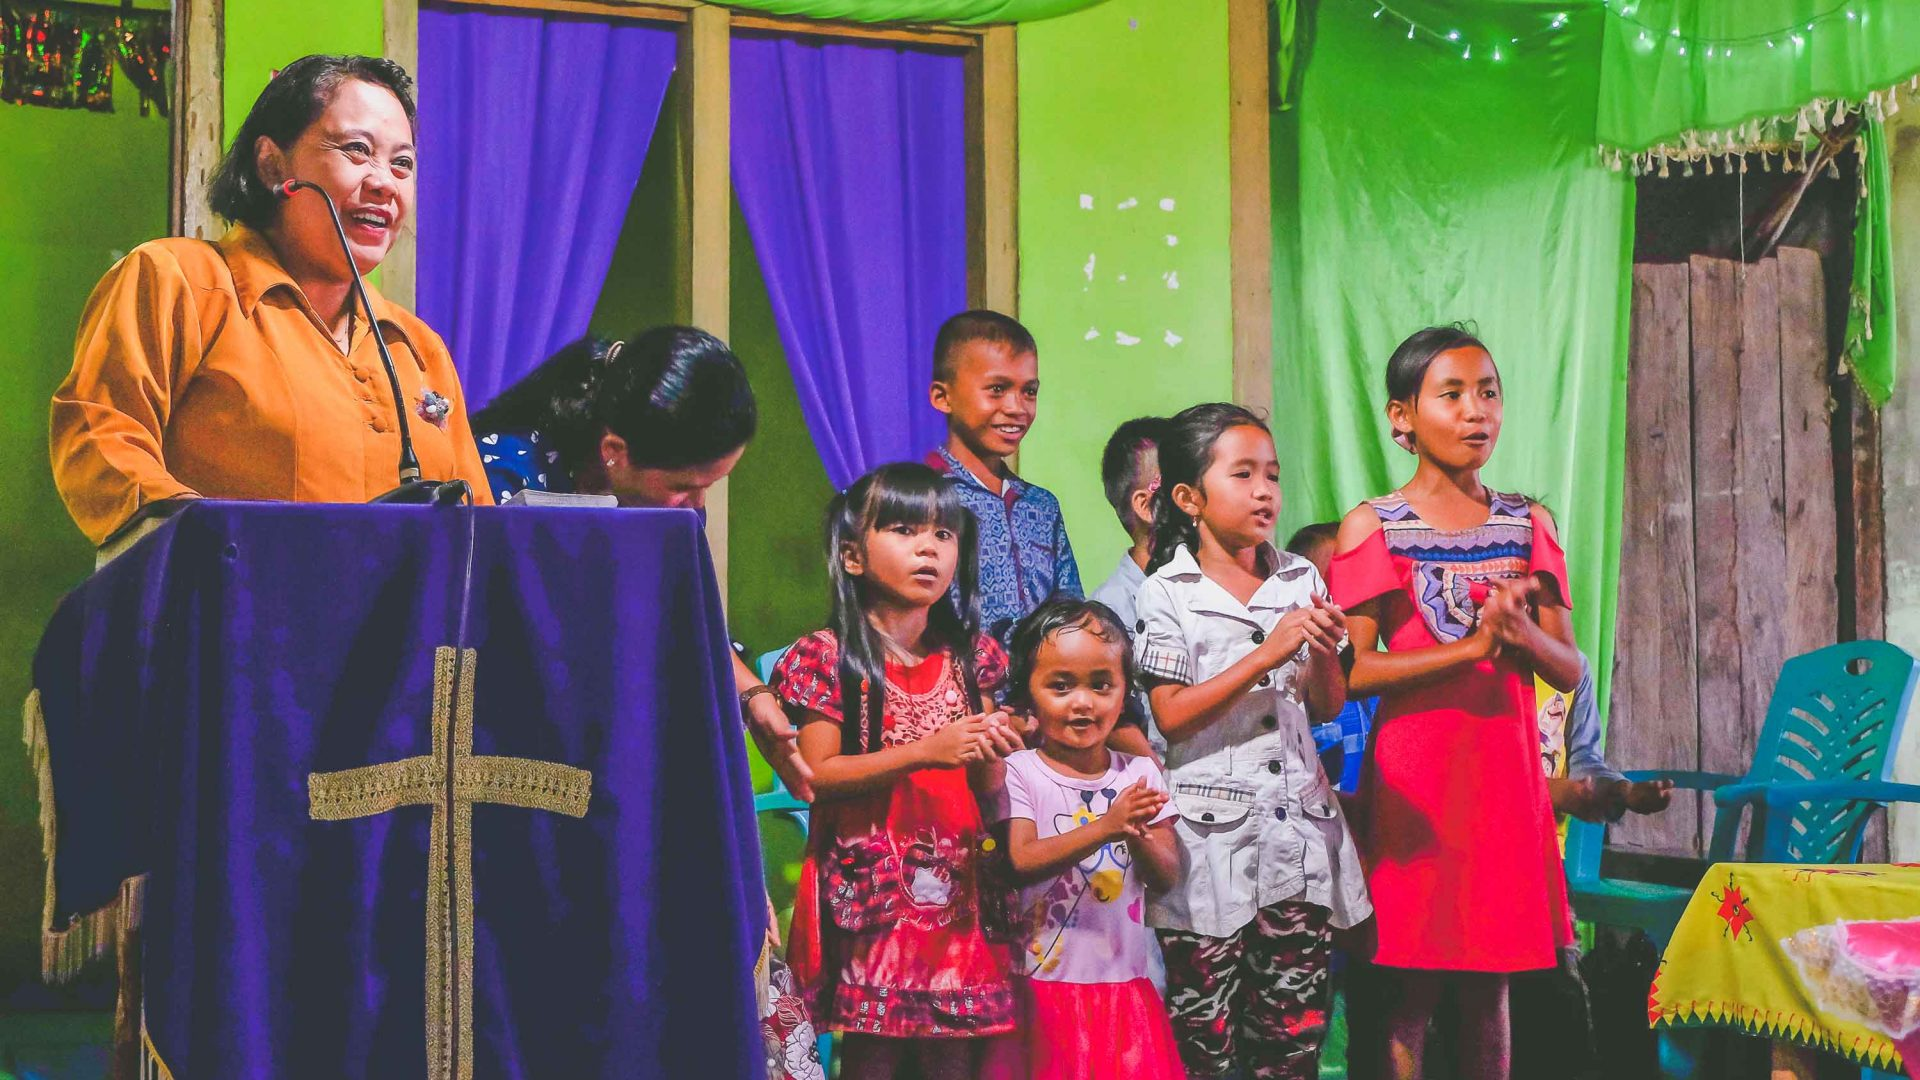 A church ceremony in the Catholic village of Bancea in Indonesia.